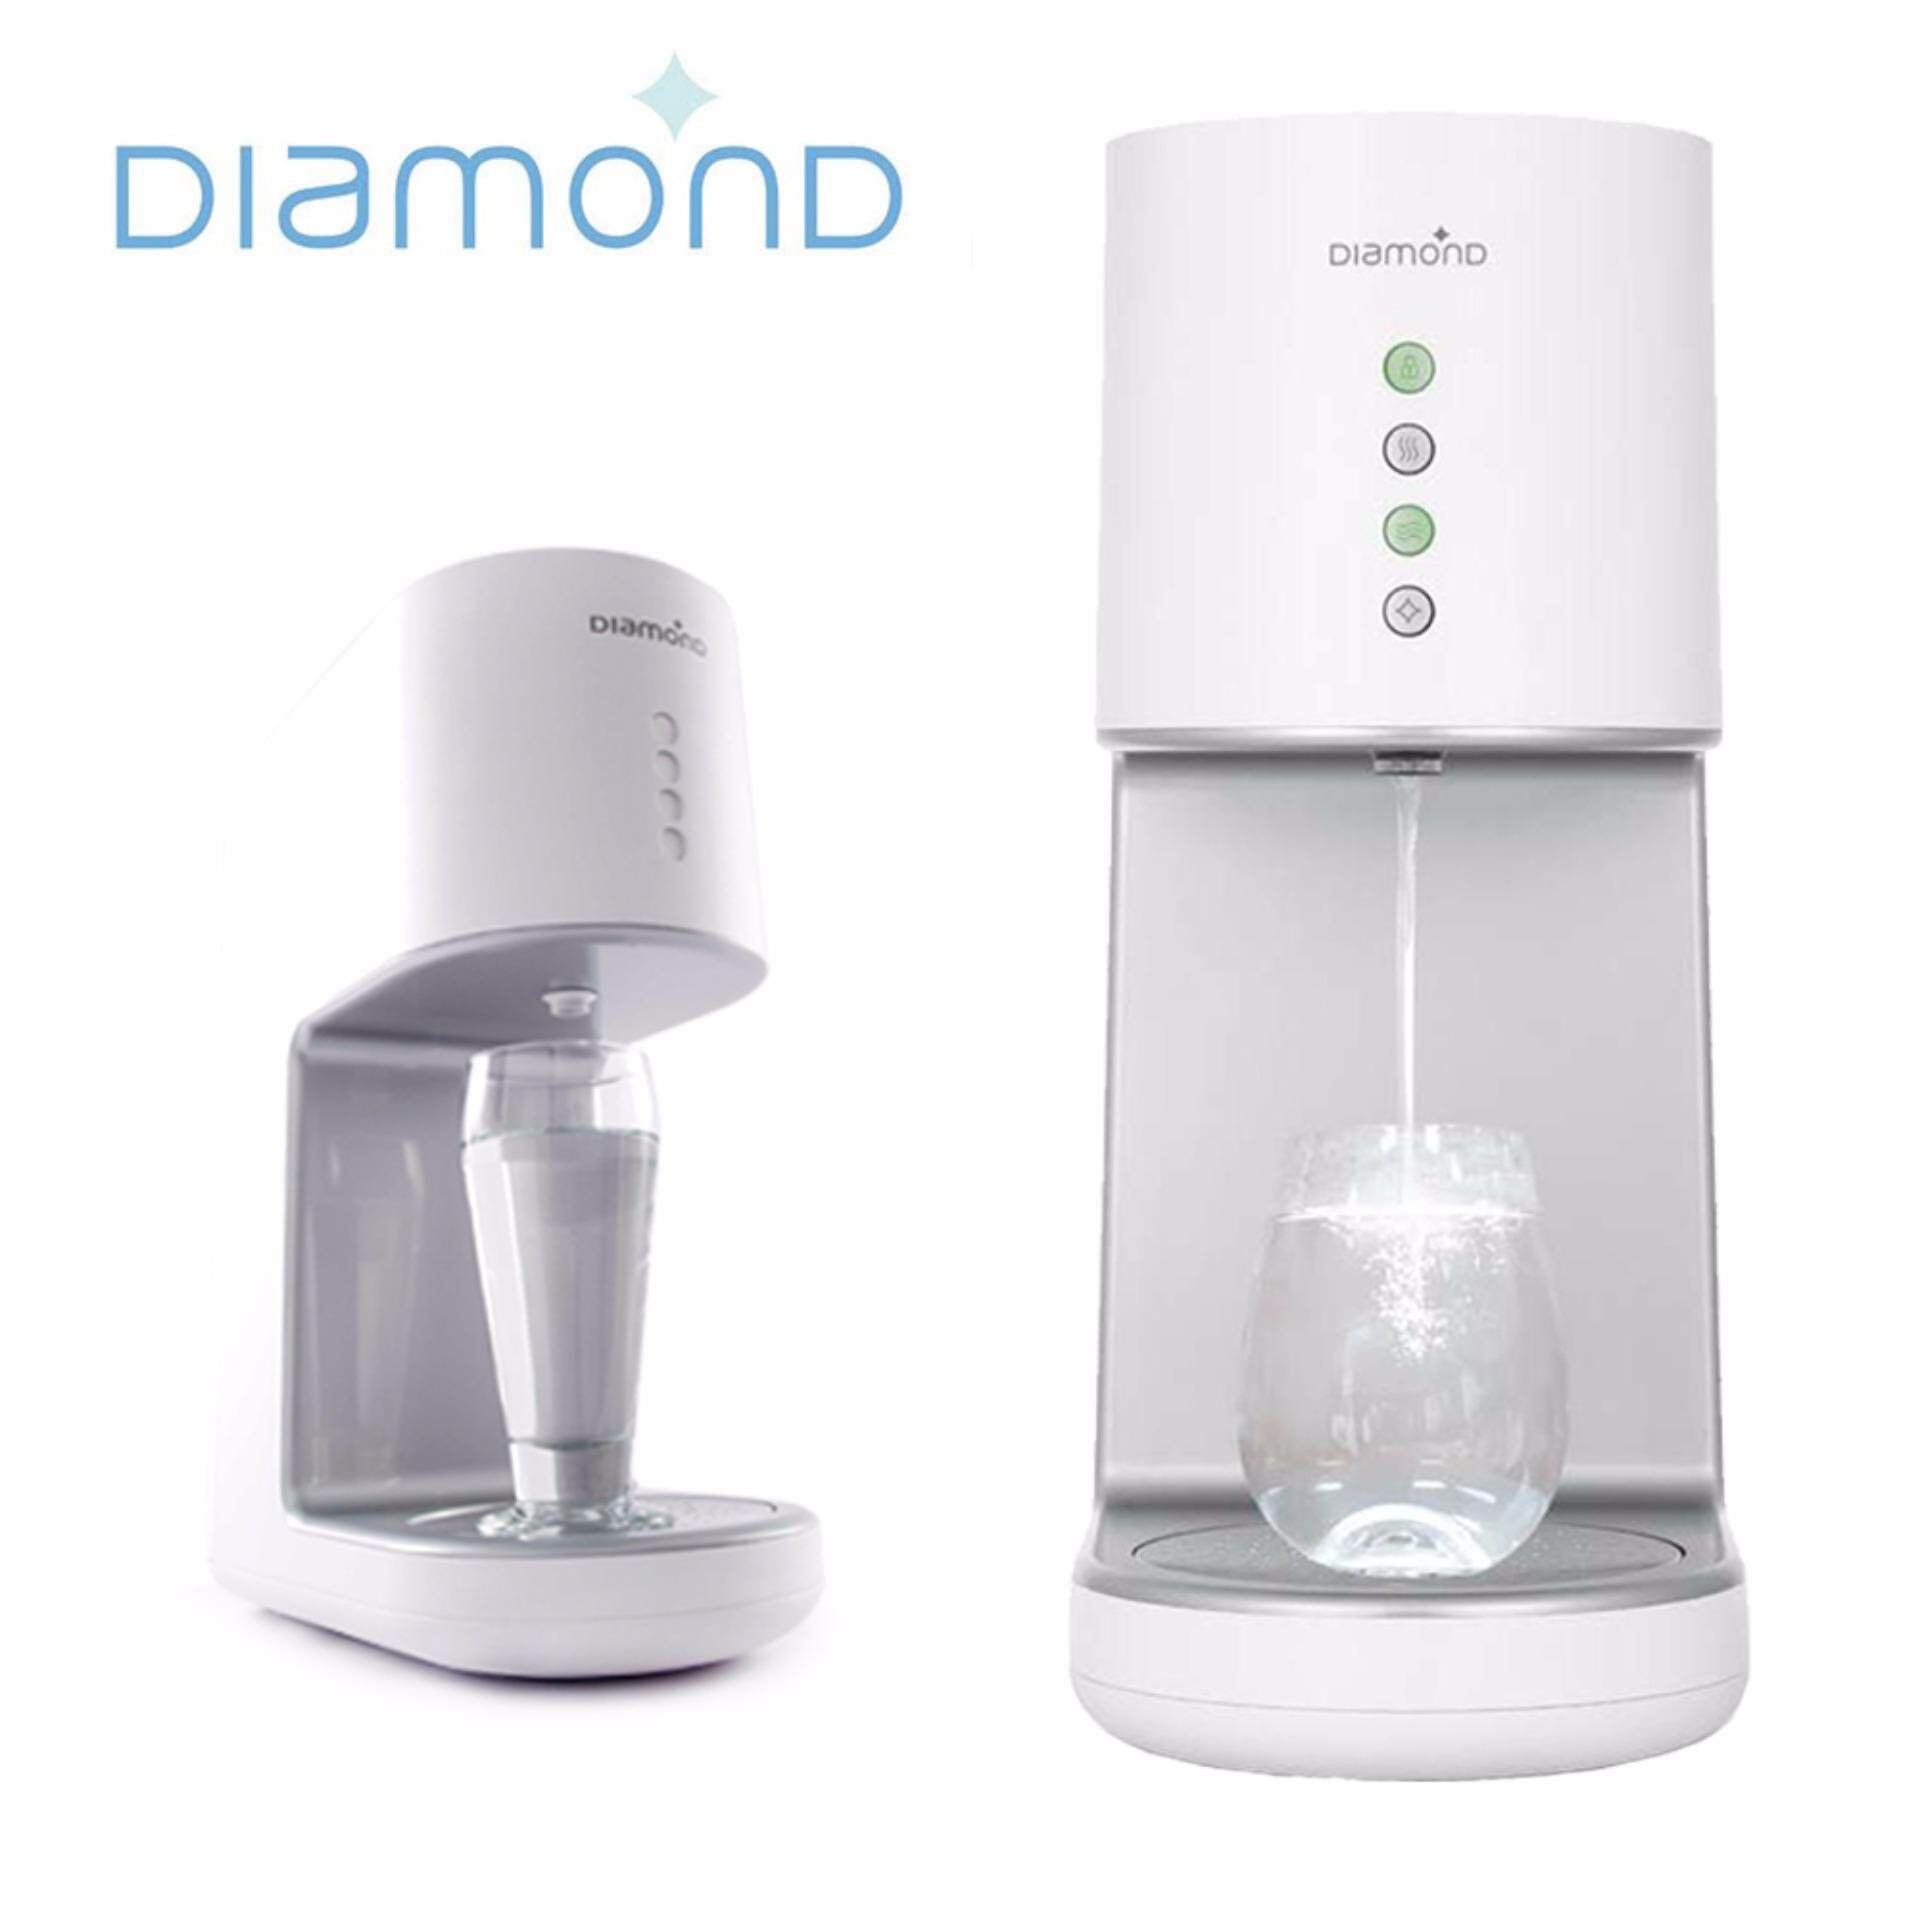 100% Authentic Diamond 3 Seconds instant Hot Water Dispenser with Warm Water Function Diamond Water Bar + 1 Year Diamond Warranty